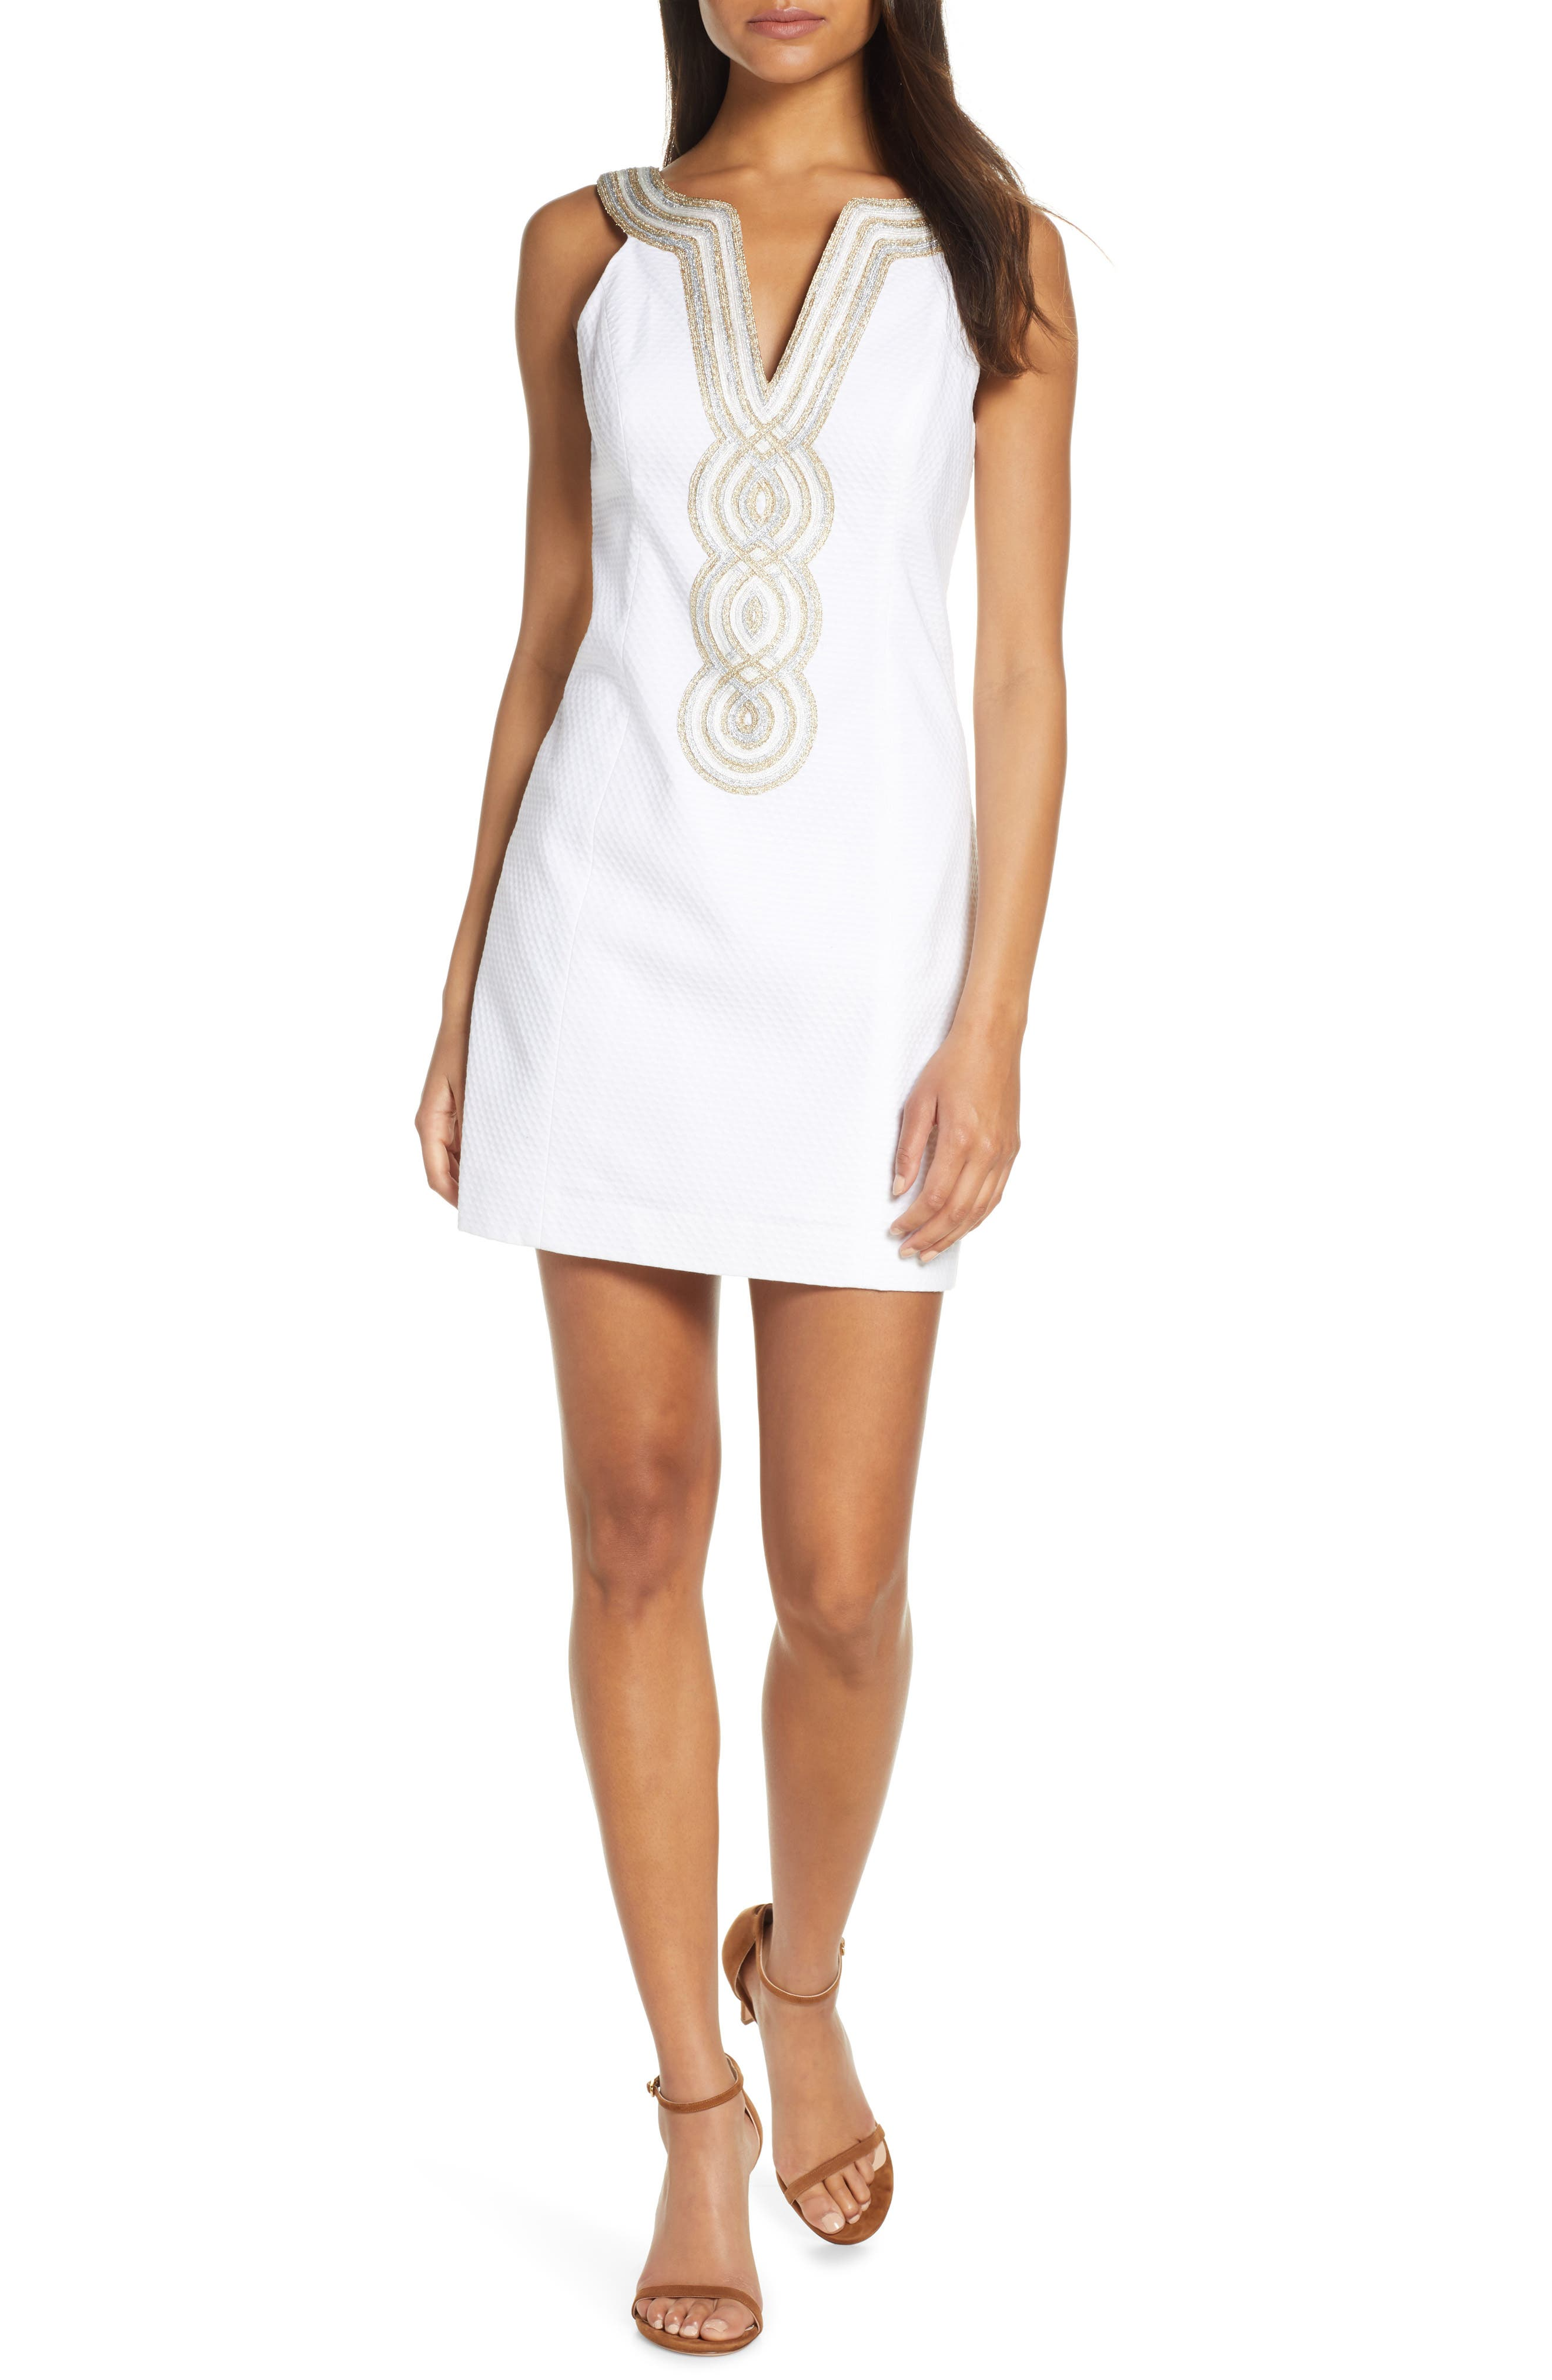 Metallic silver and gold threads swirl their way up, down and around the split neckline of a classic sheath in a crisp cotton-pique fabric. Style Name: Lilly Pulitzer Valli Sheath Dress. Style Number: 5834670. Available in stores.